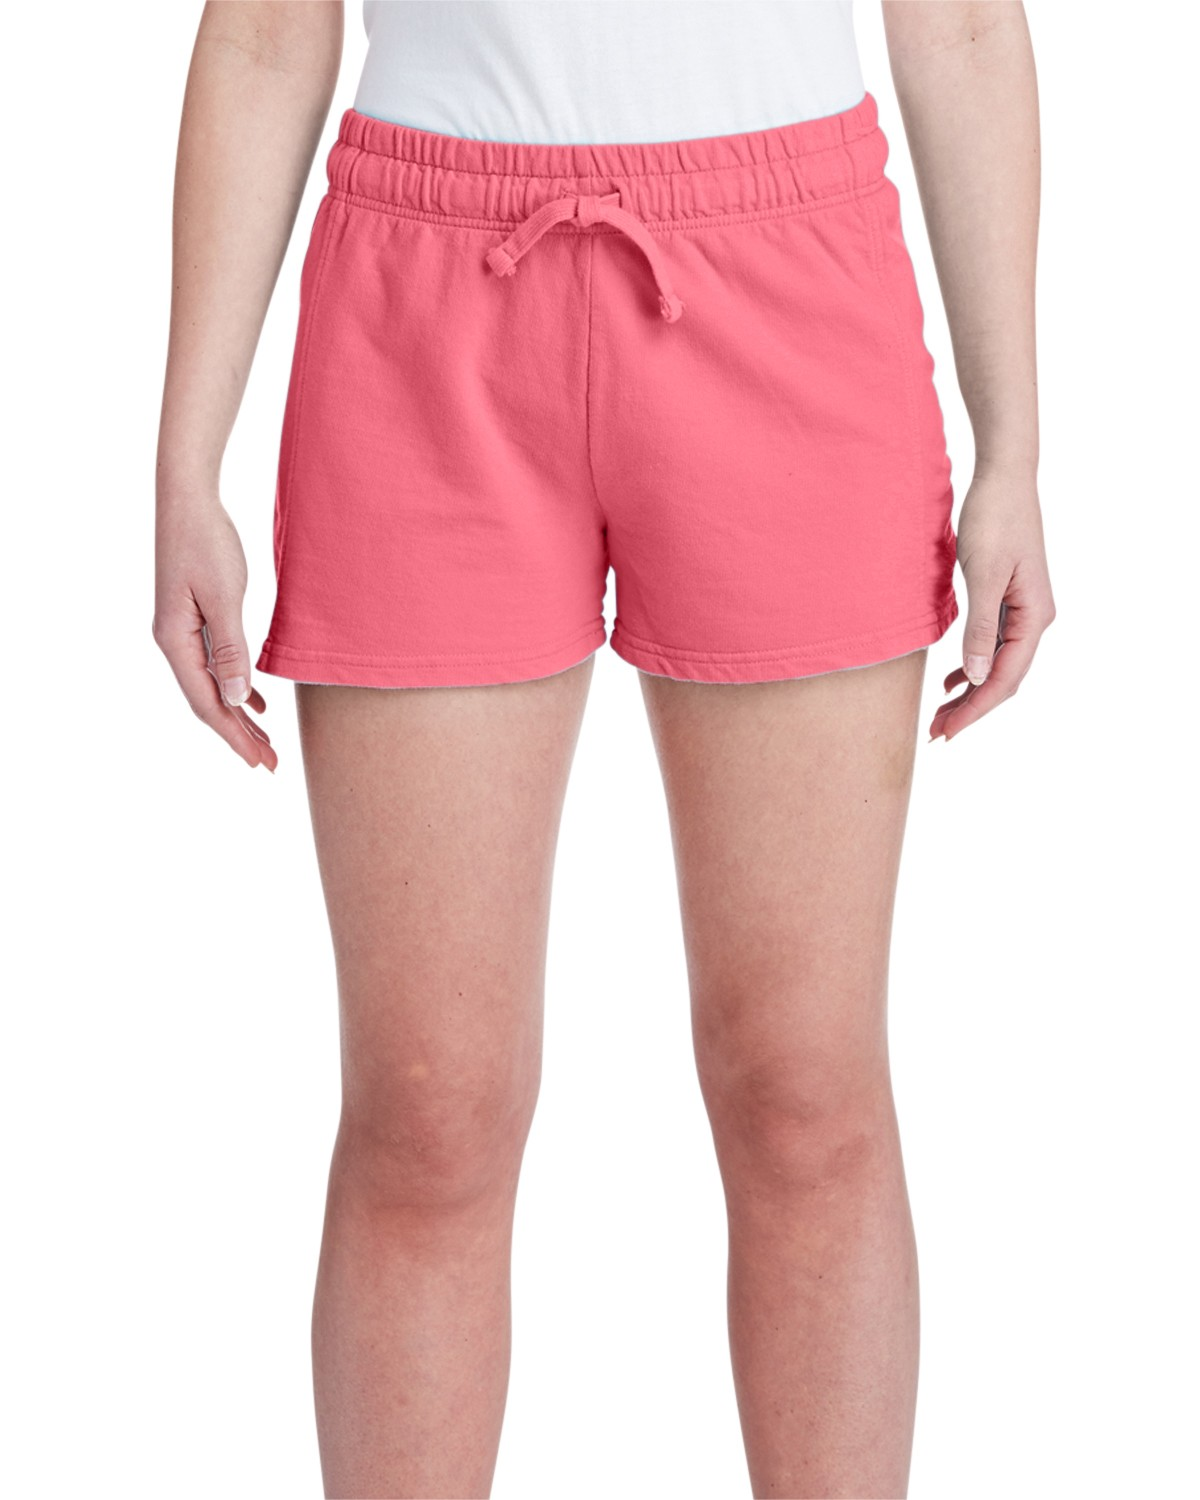 1537L Comfort Colors WATERMELON